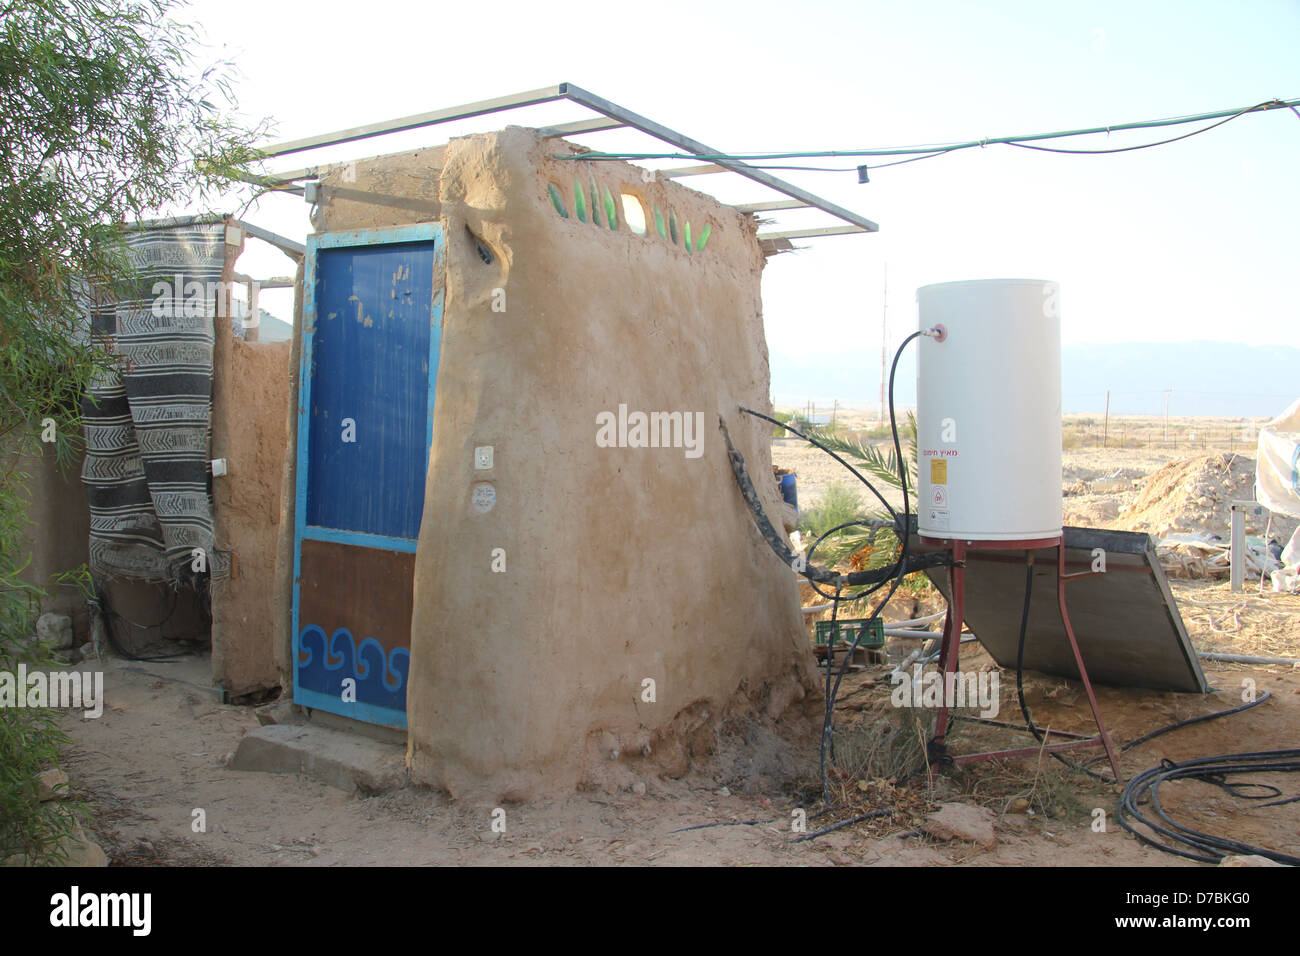 Solar powered hot water shower in Lotan, the ecological kibbutz in the Arava, south of Israel - Stock Image